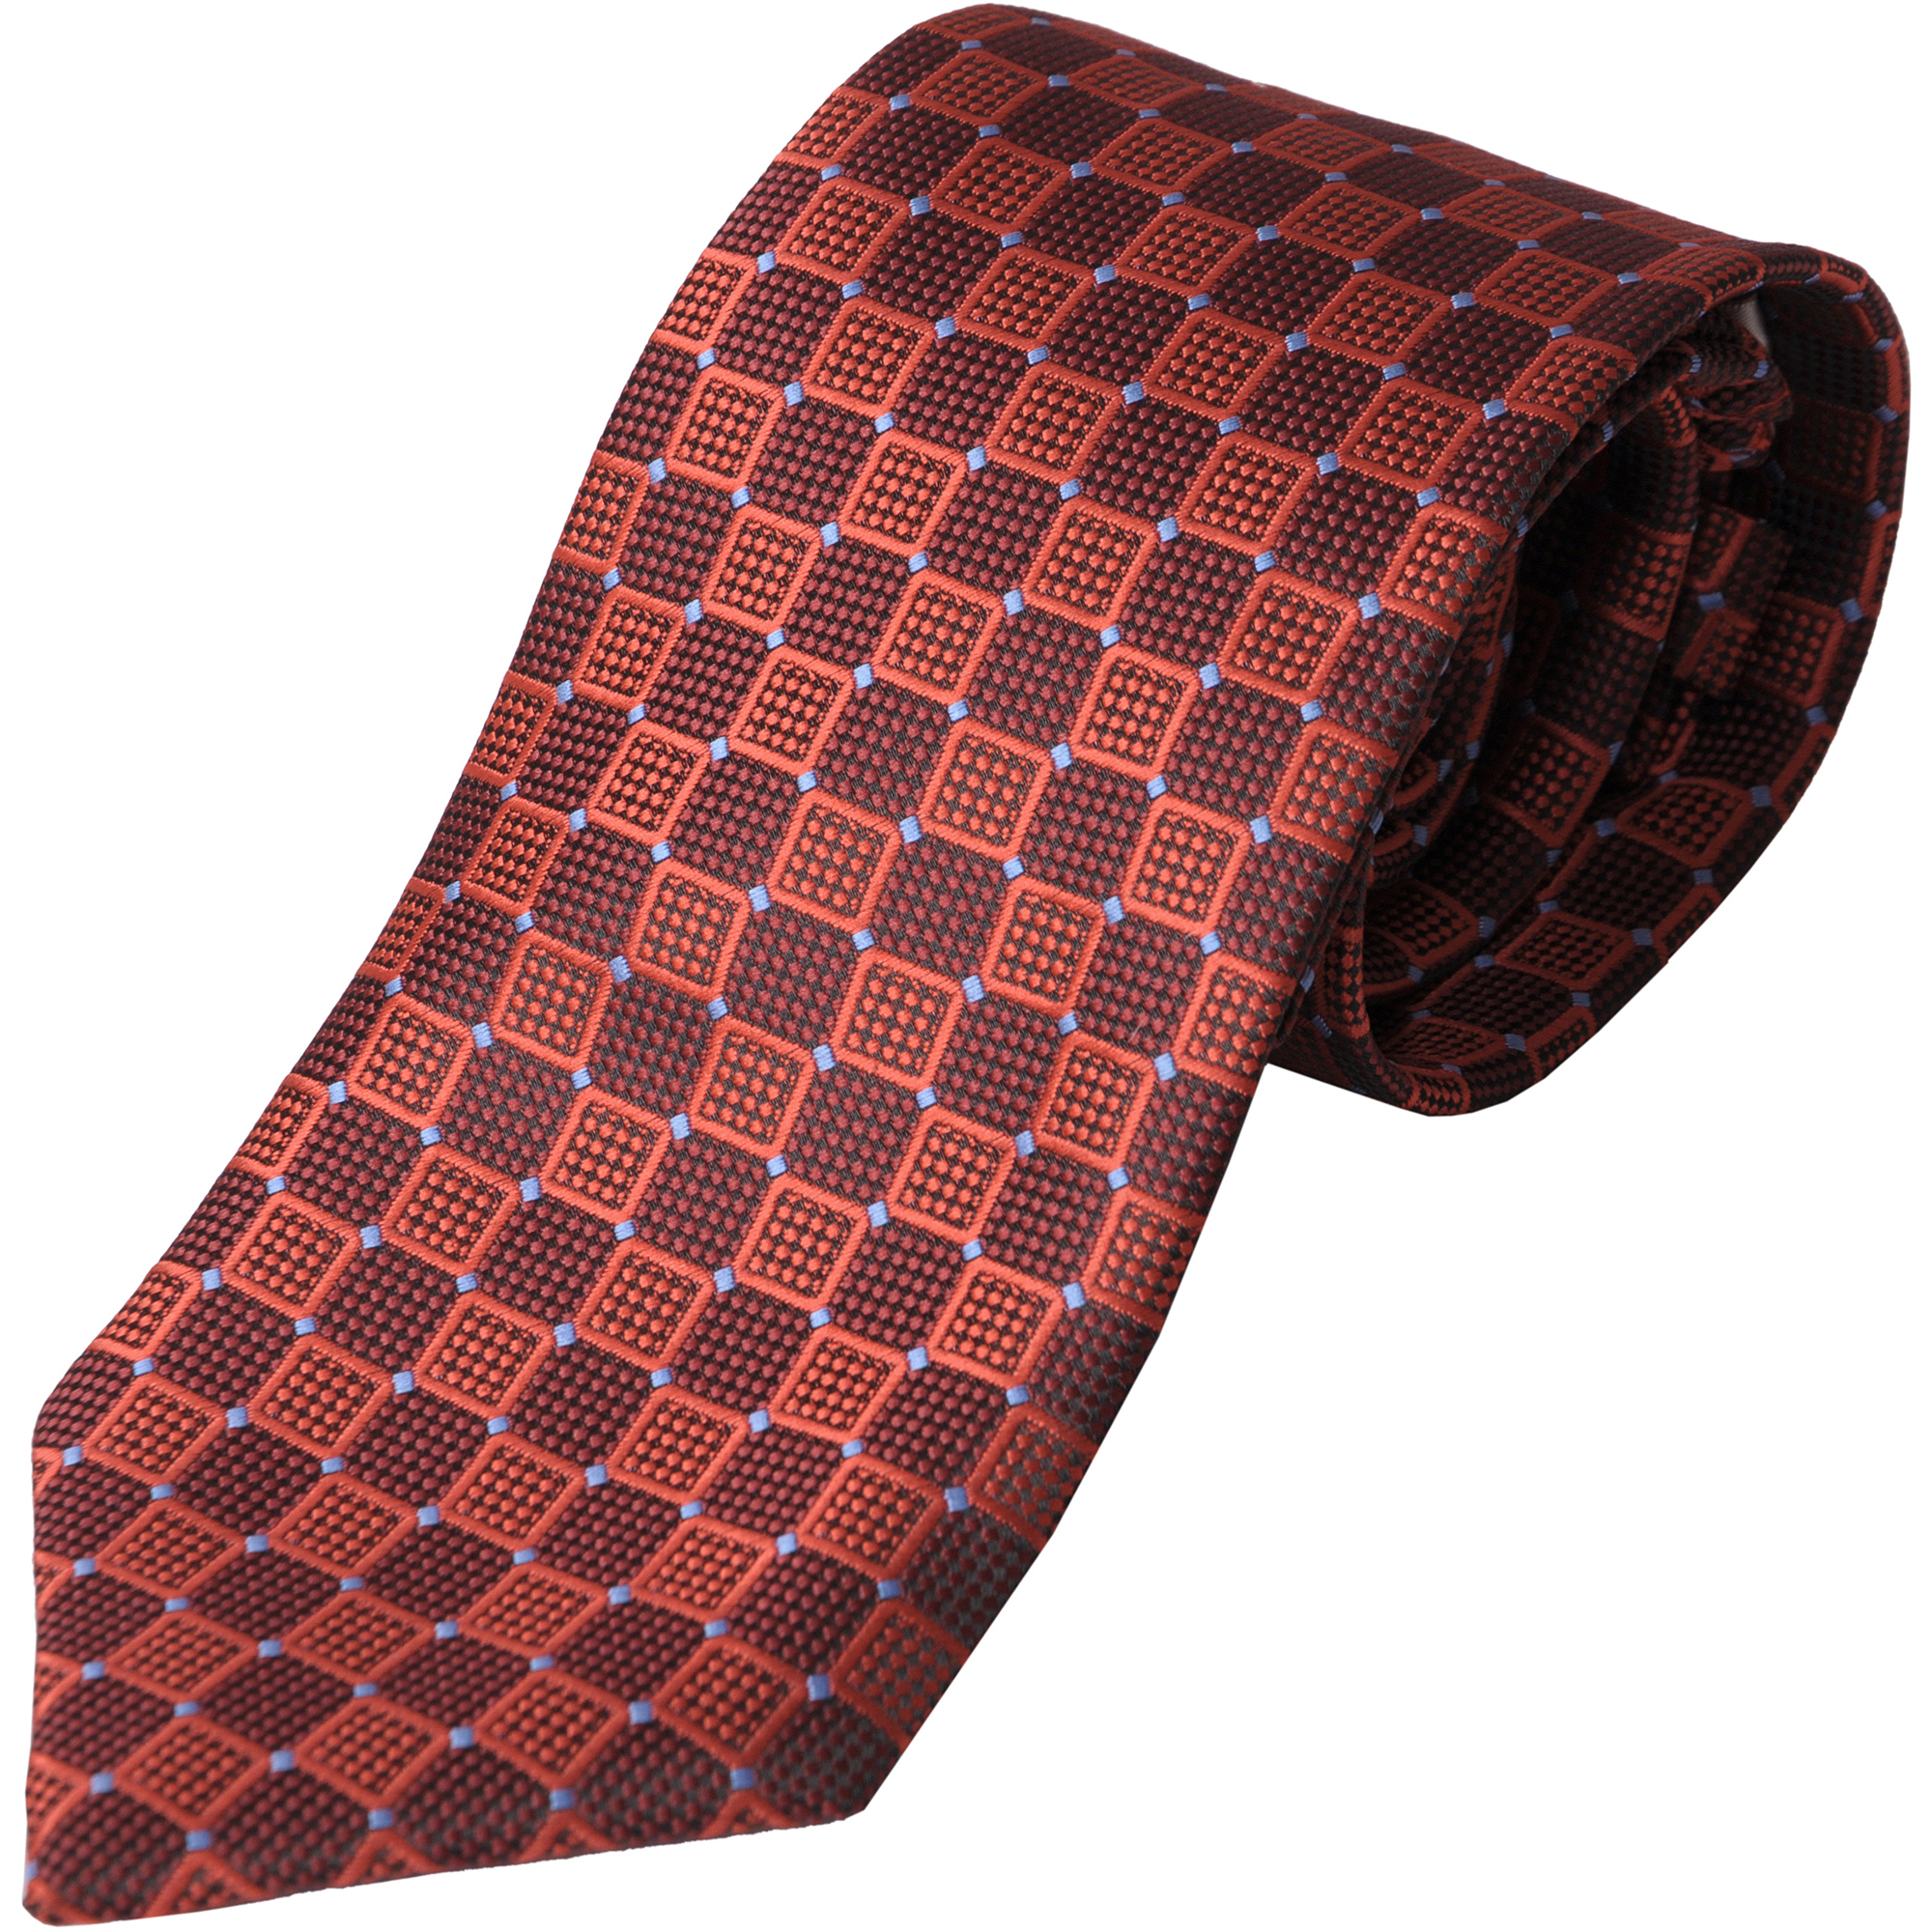 Daxx St. P Mens Microfiber Tie and Hanky Set